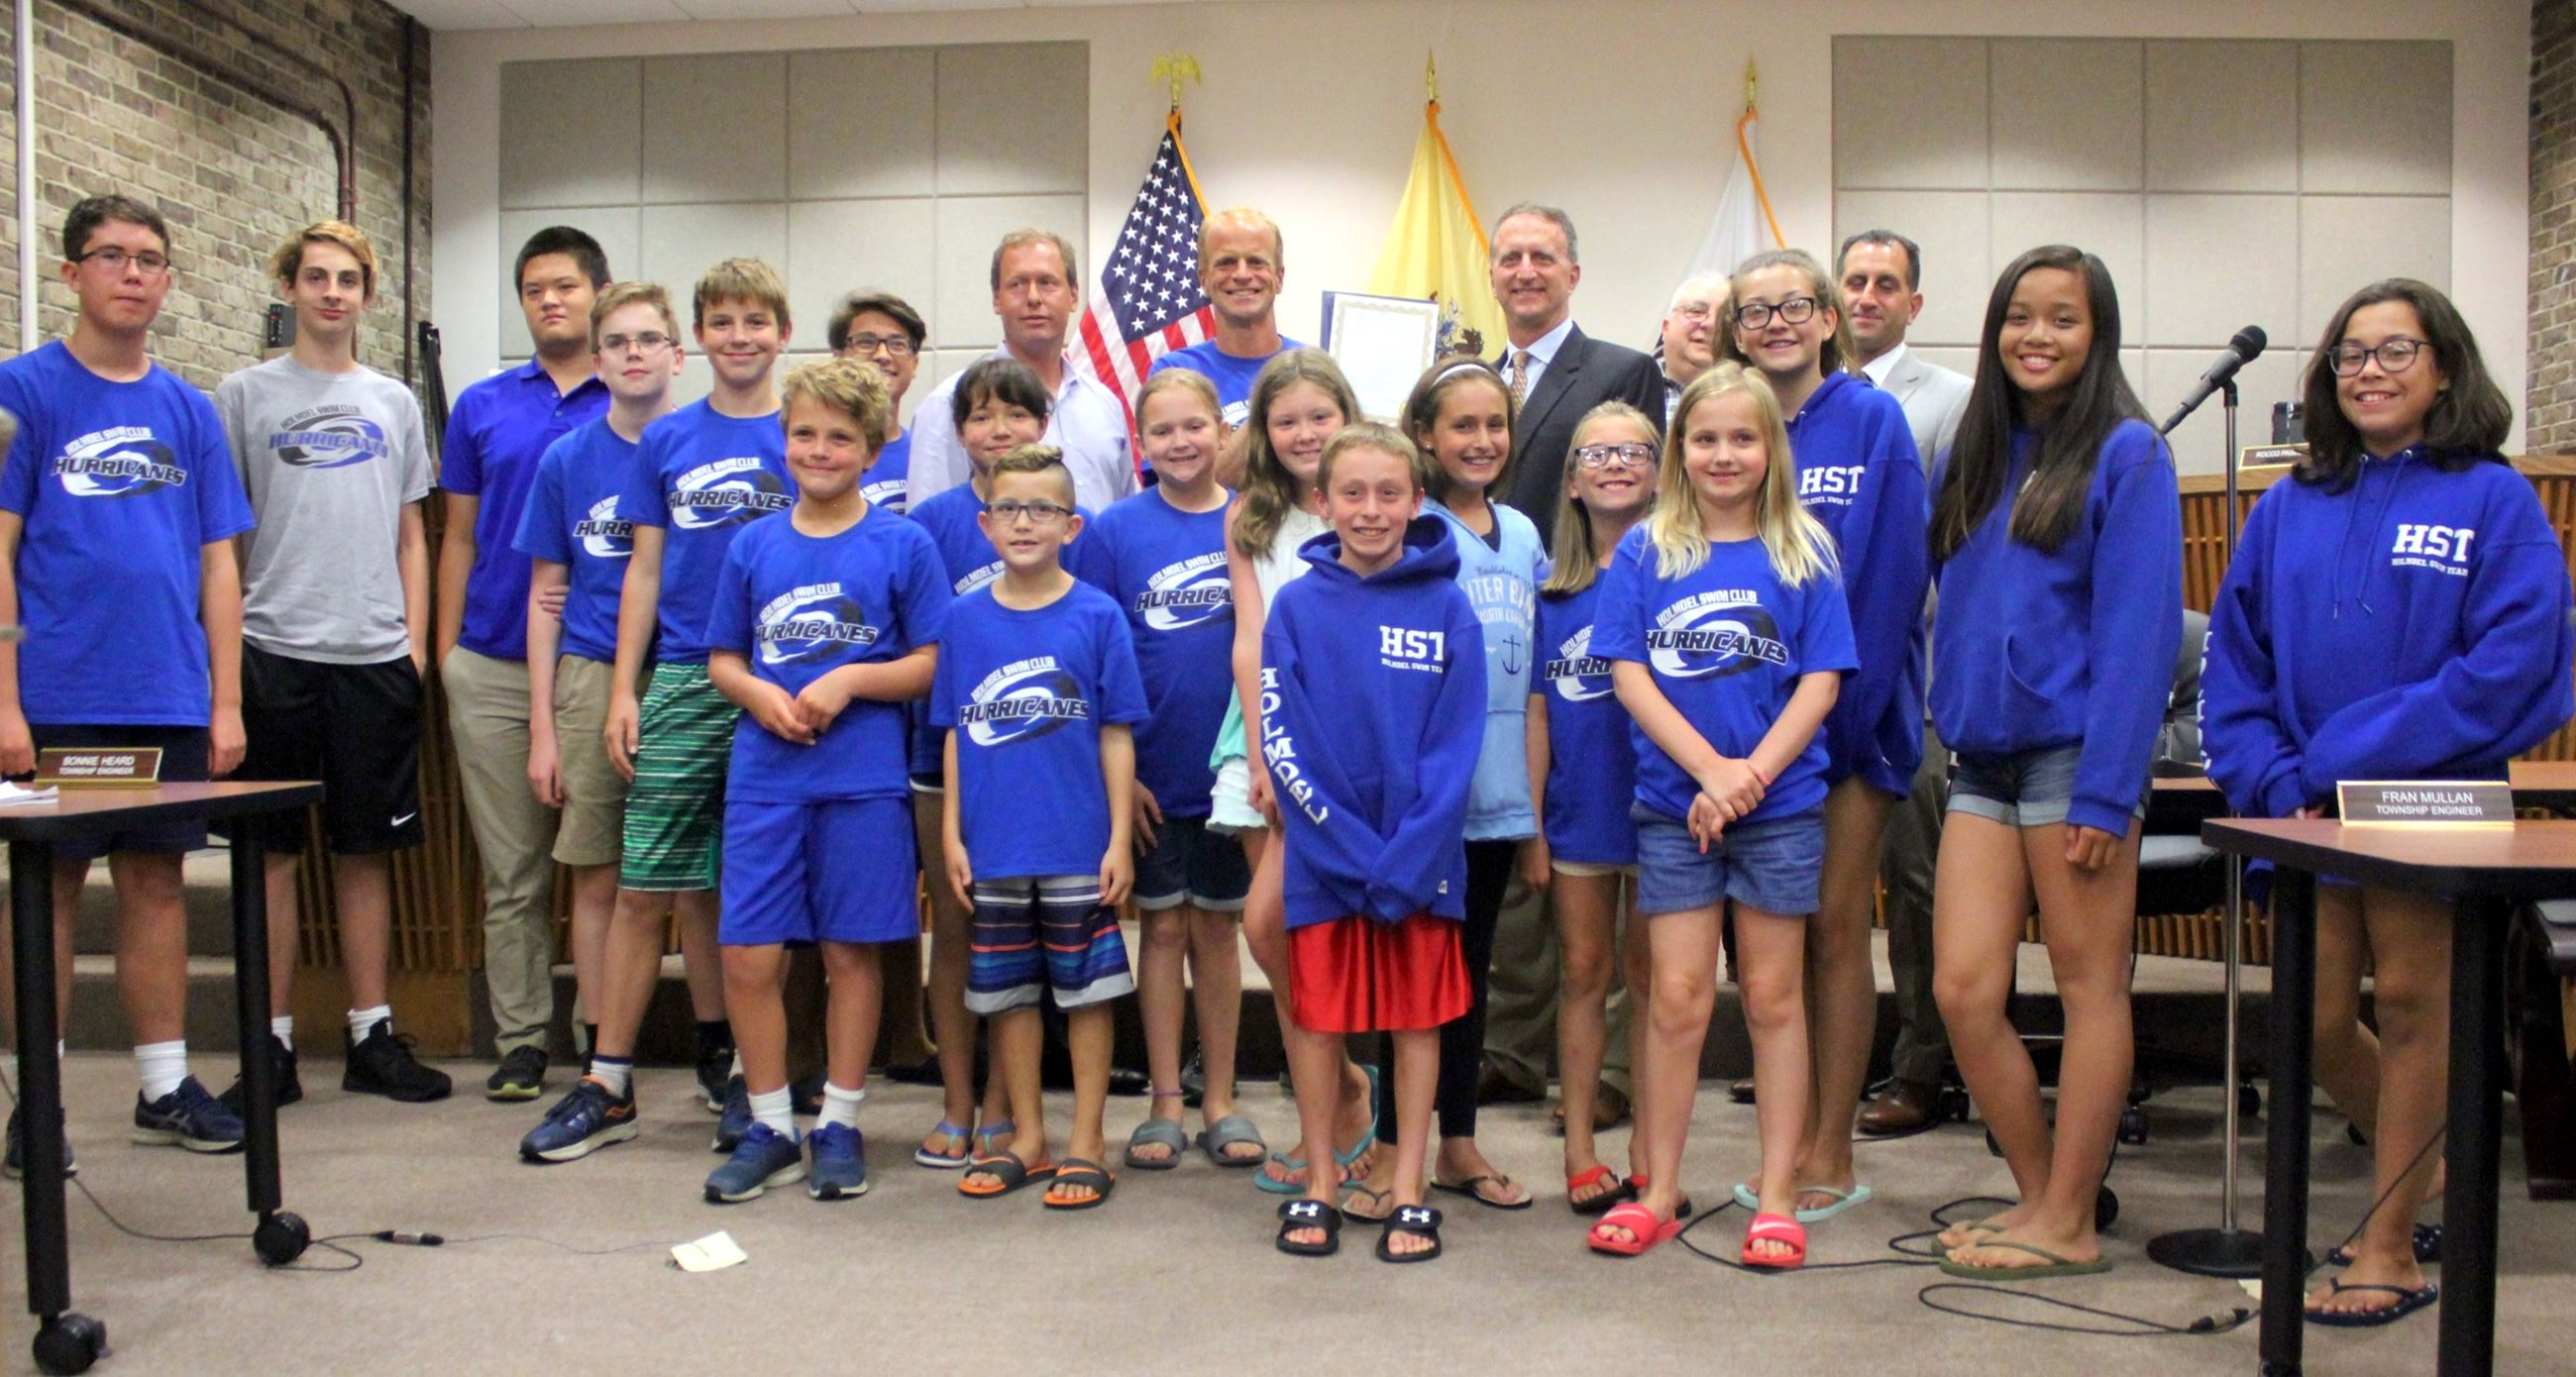 The Holmdel Hurricanes Swim Team shown being honored with an official proclamation from the Township